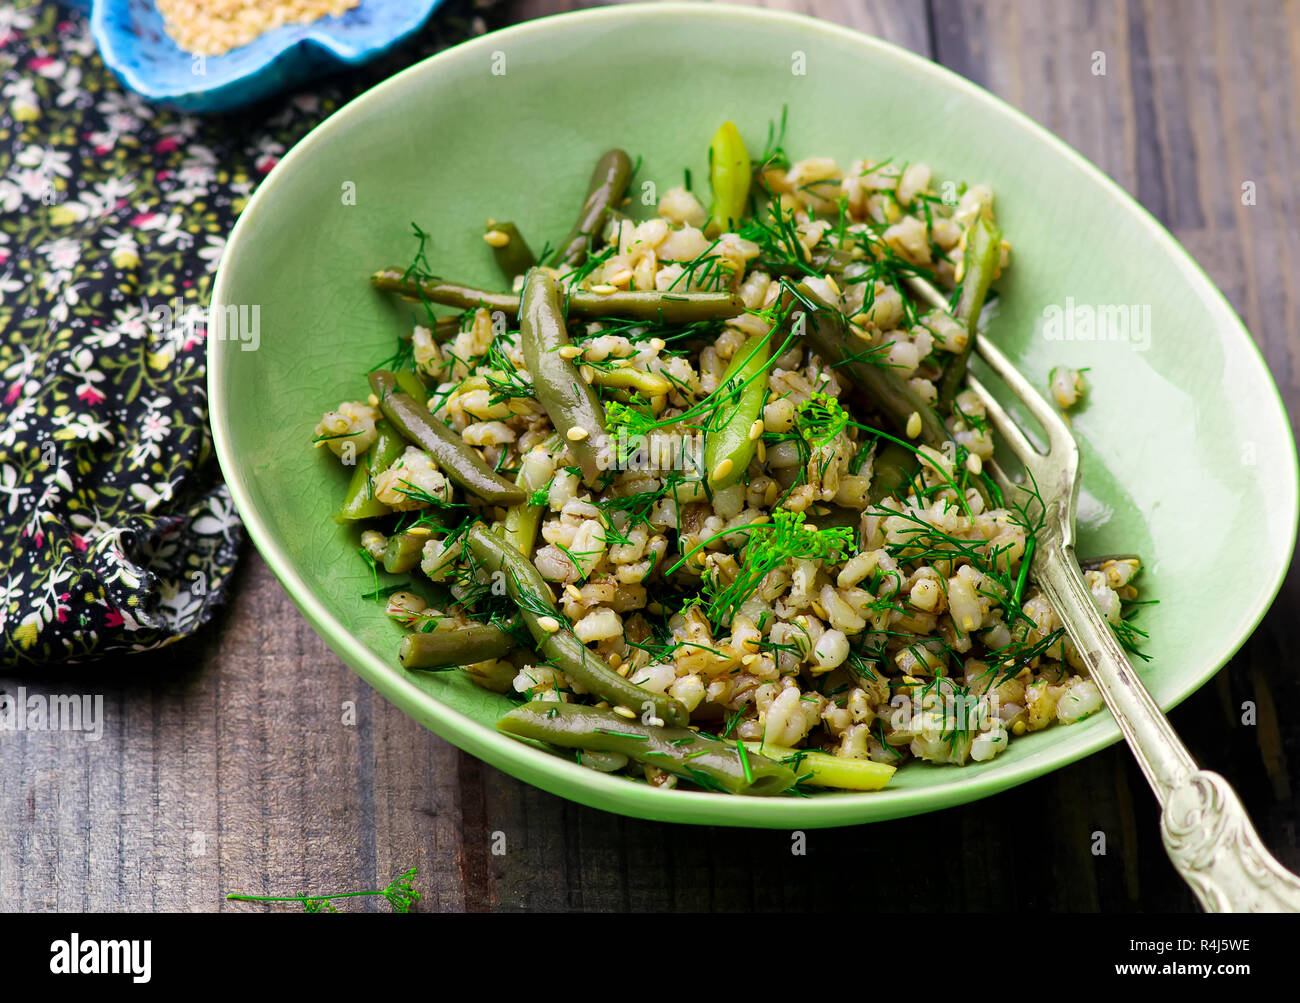 Salad from green beans and barley groat . style rustic. selective focus - Stock Image